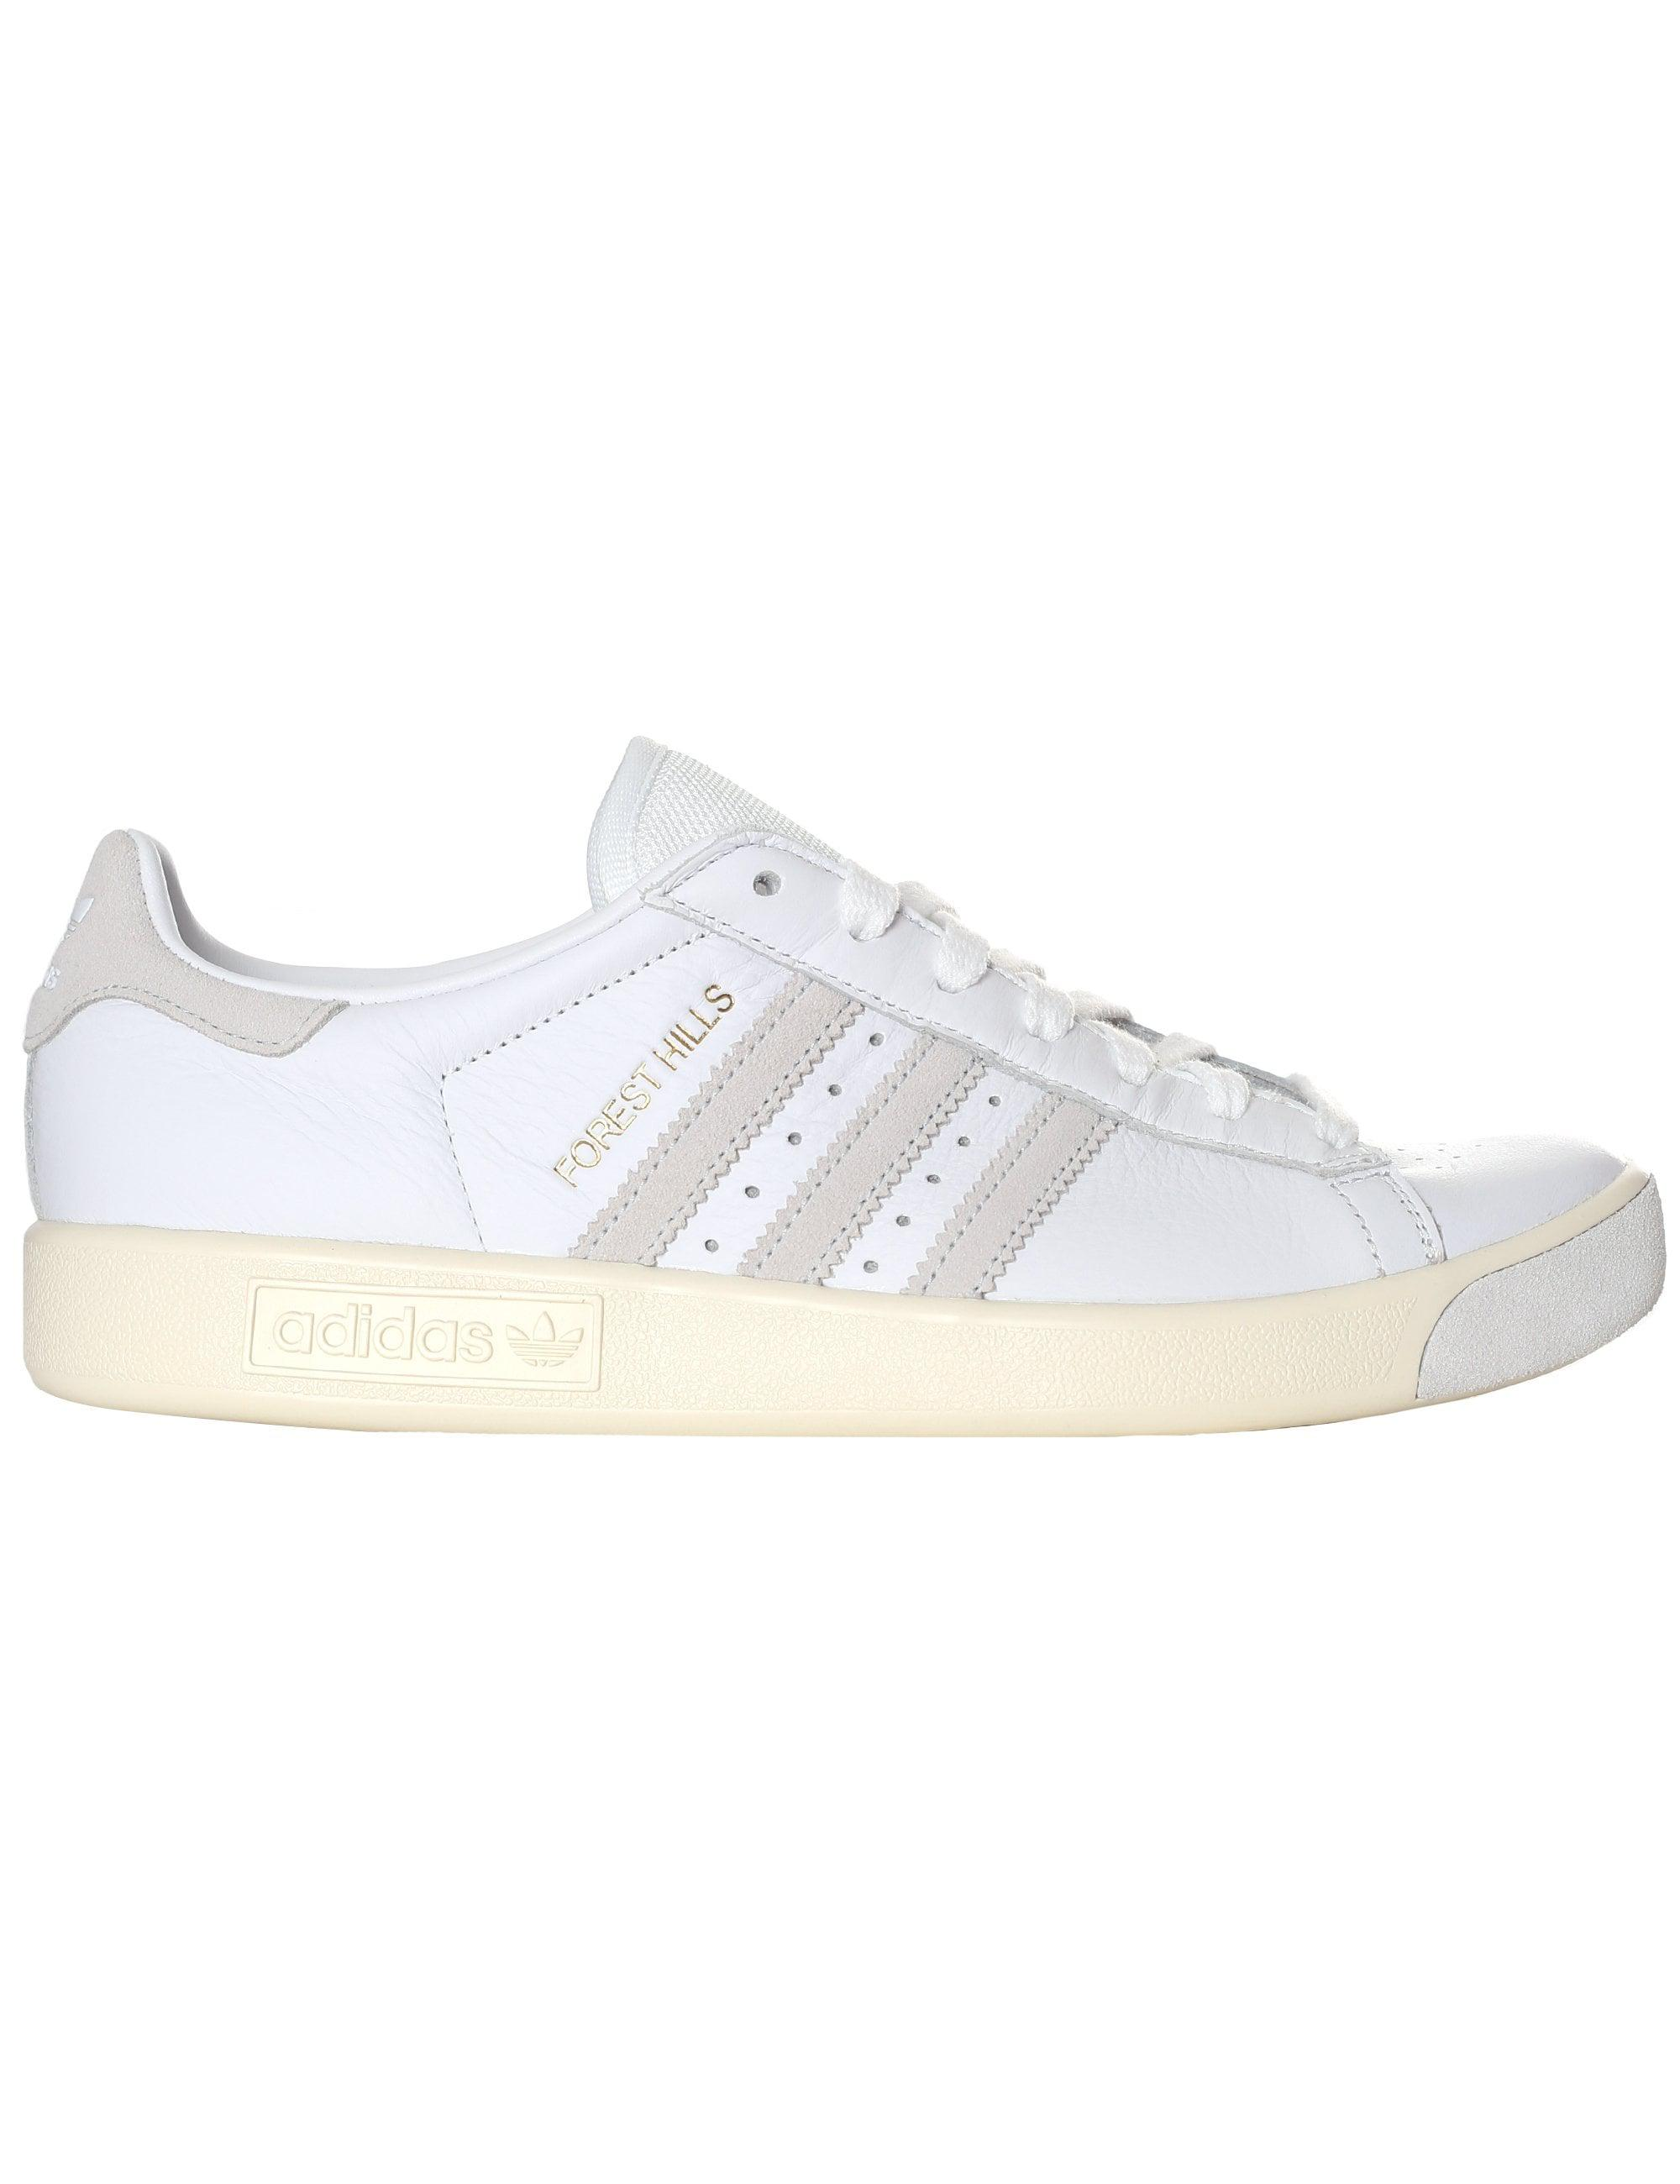 adidas trainers for men white